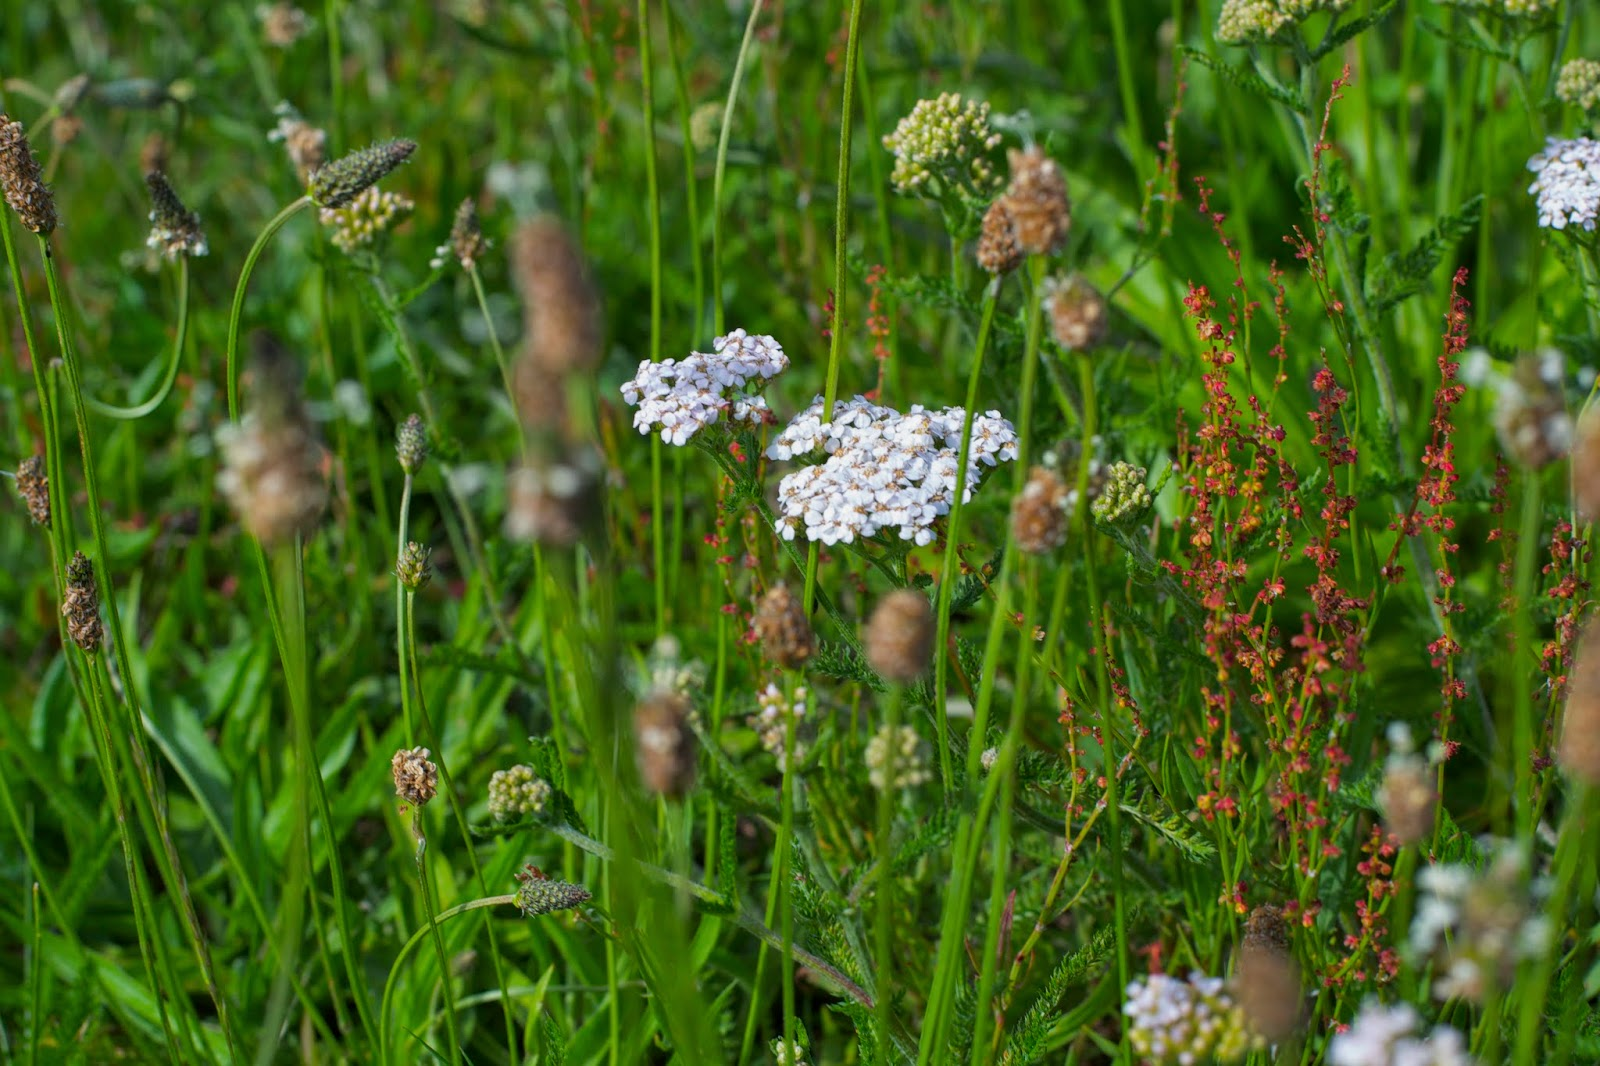 Oh, hello Yarrow! Look at you shining in the sun, among the wild grasses!